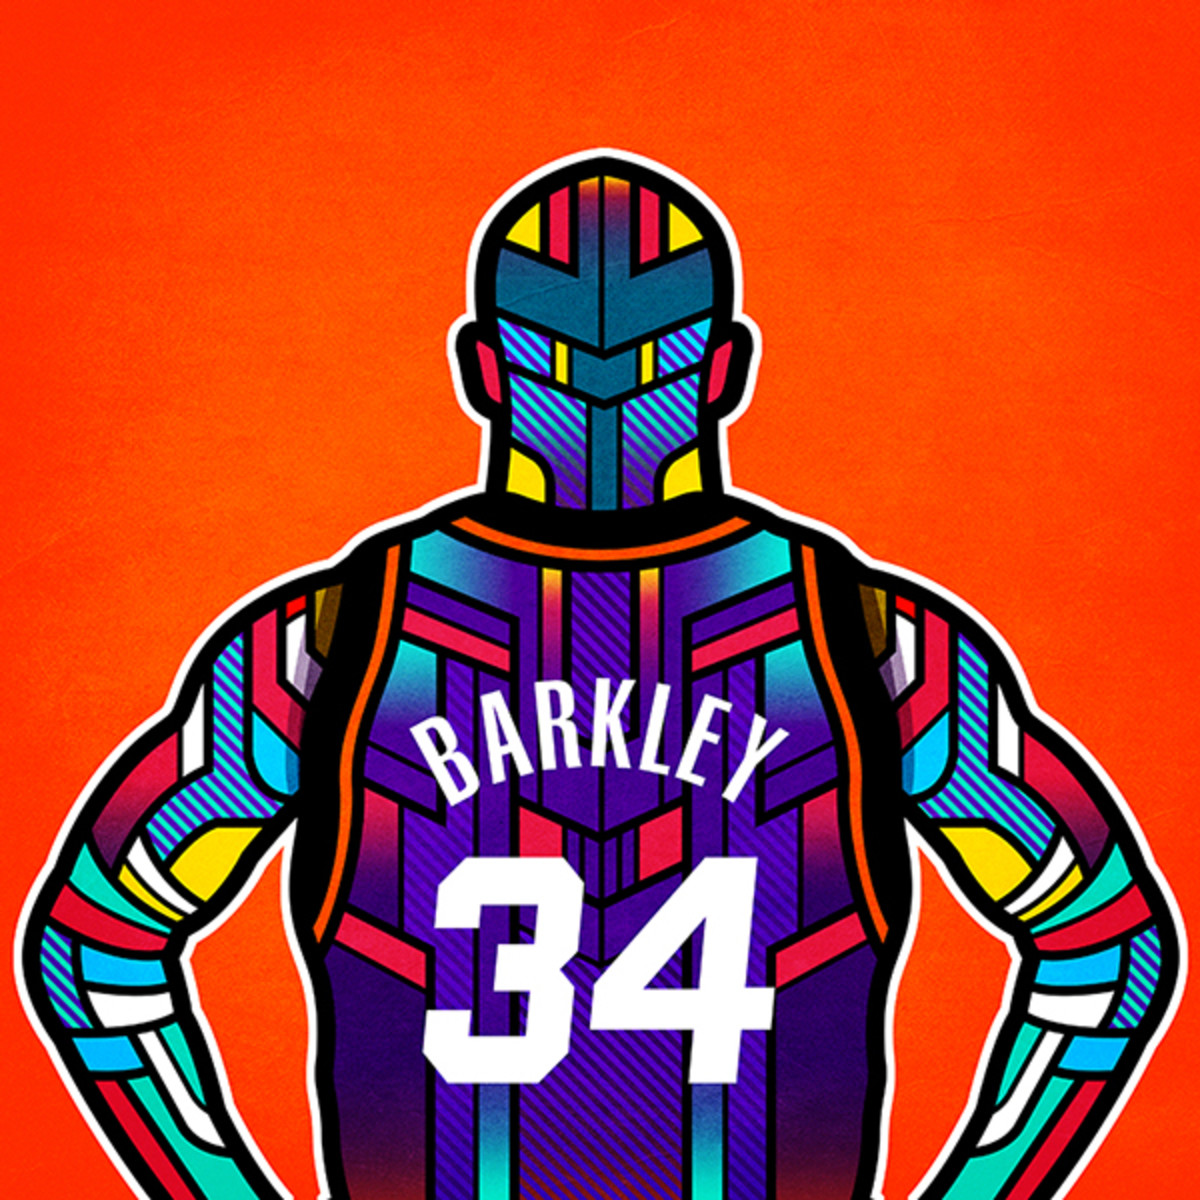 Charles-Barkley-art.jpg